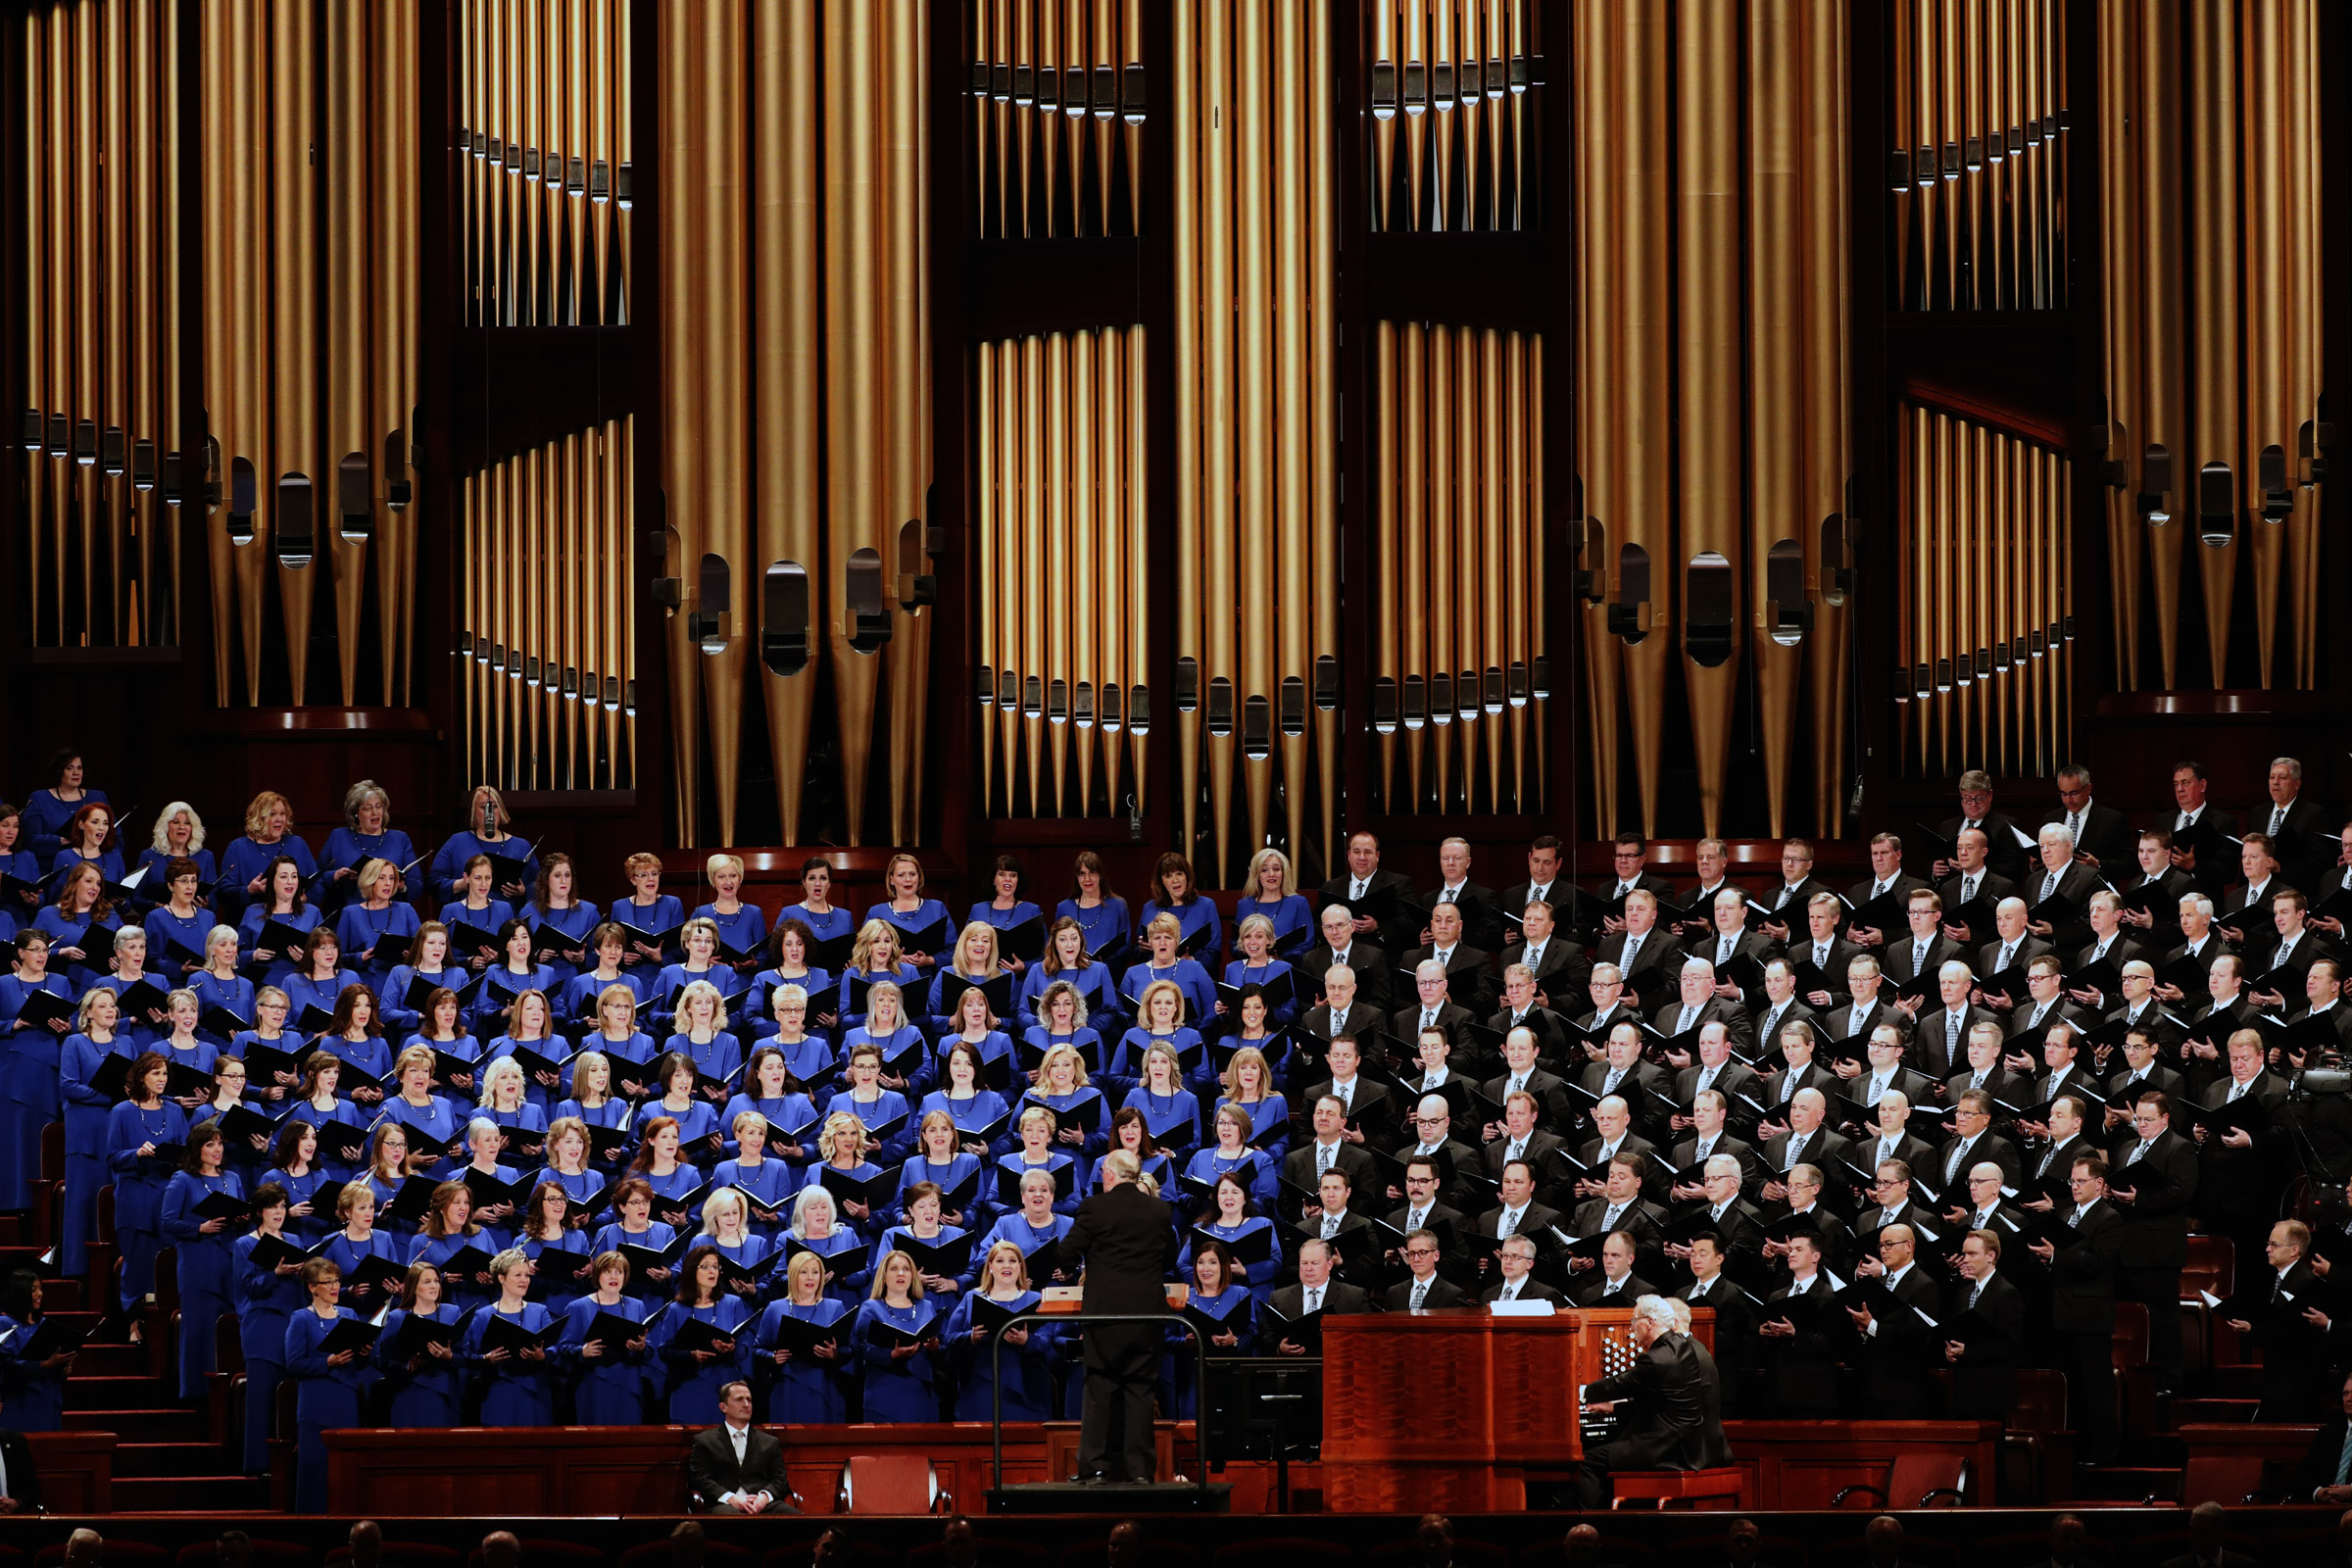 The Tabernacle Choir at Temple Square sings in the Conference Center in Salt Lake City during the morning session of the 189th Annual General Conference of The Church of Jesus Christ of Latter-day Saints on Saturday, April 6, 2019.